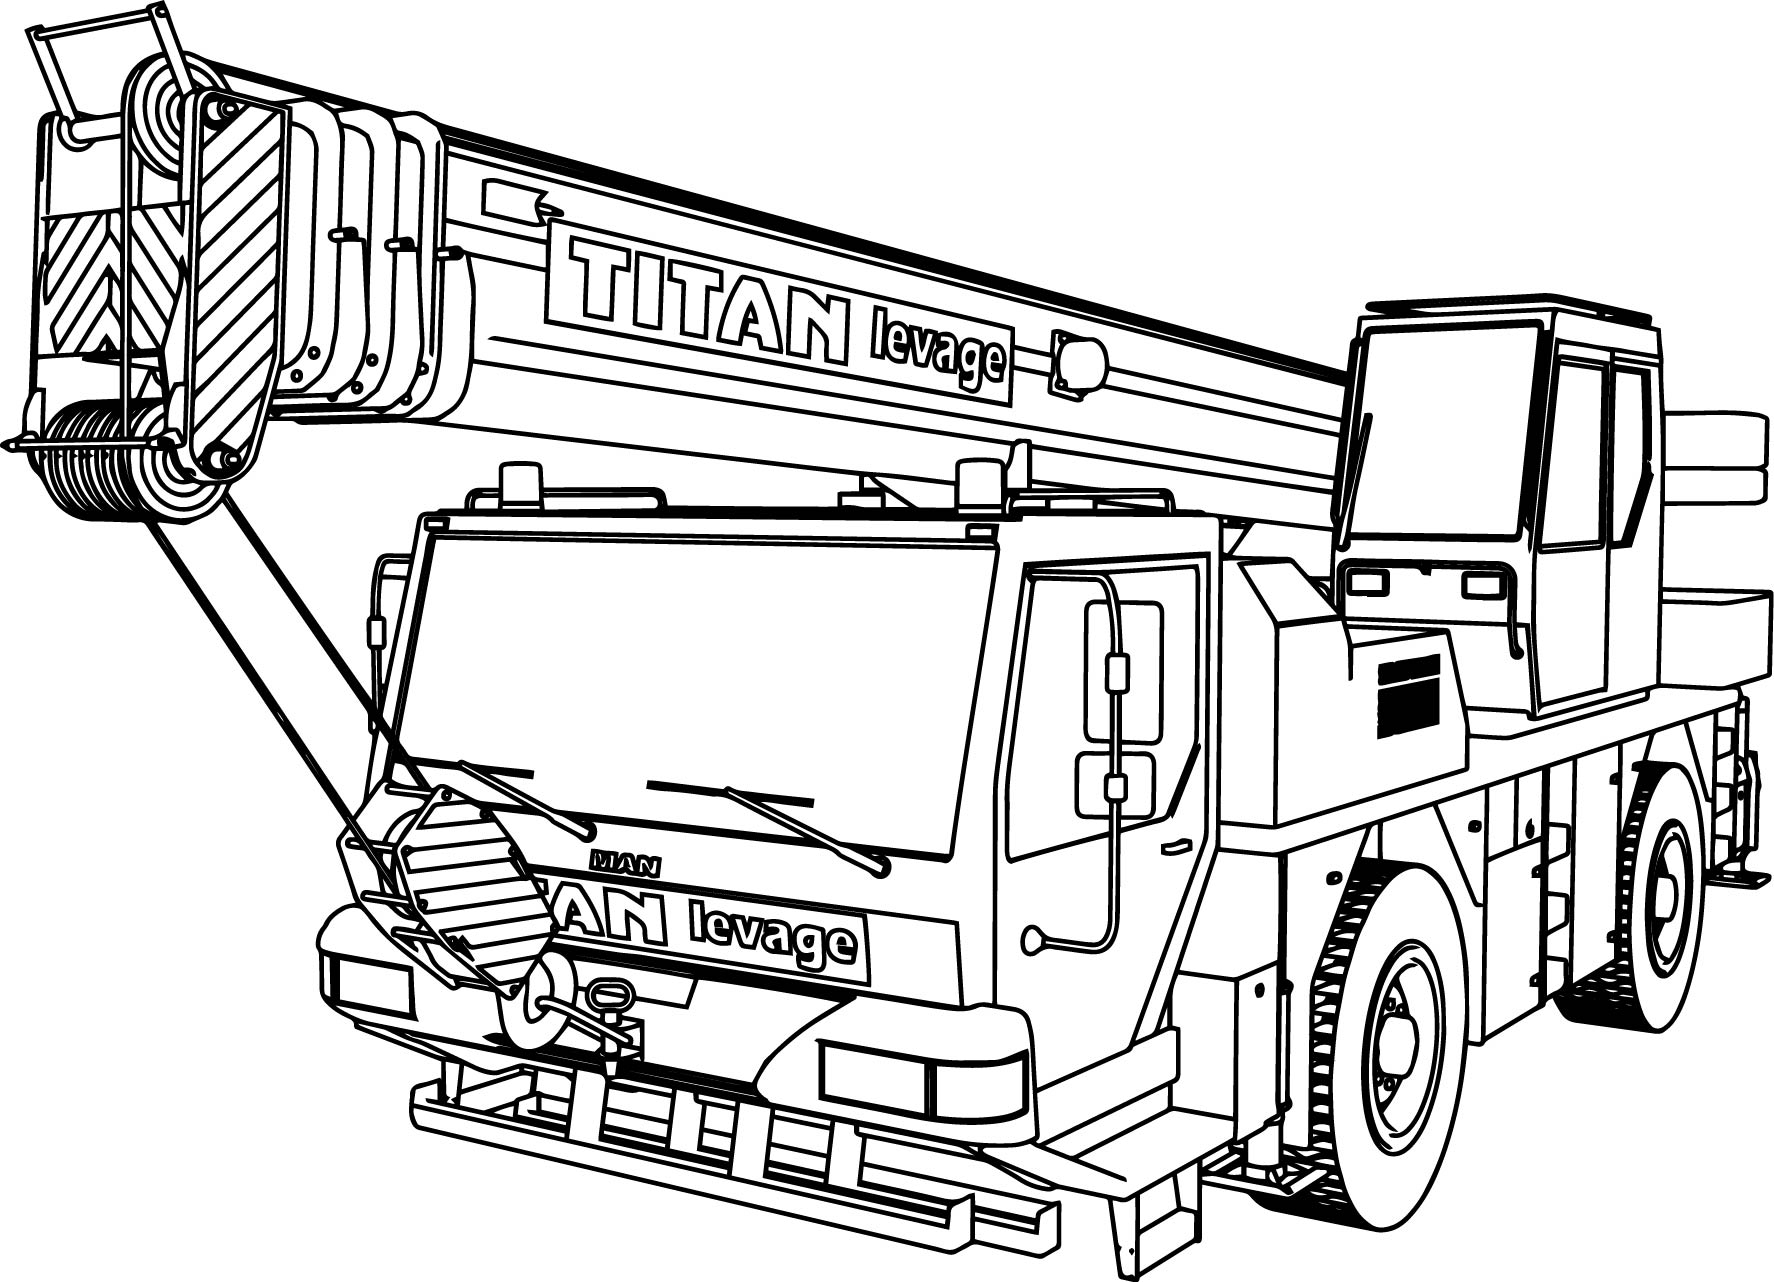 the best free crane drawing images  download from 668 free